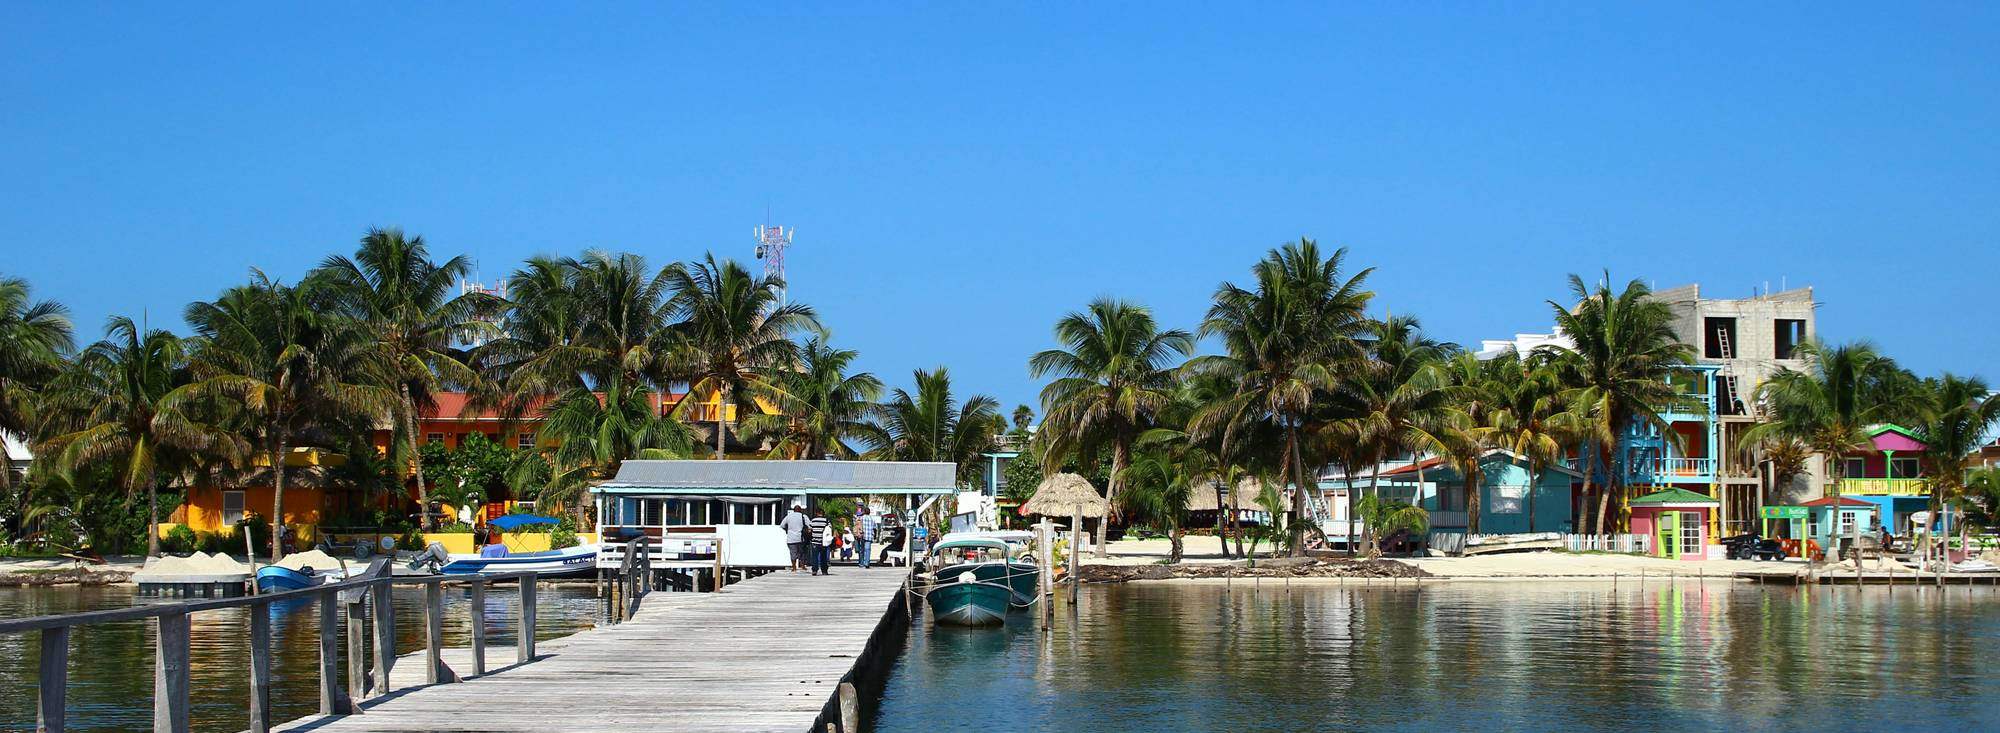 The Top 5 Places to Visit in Belize